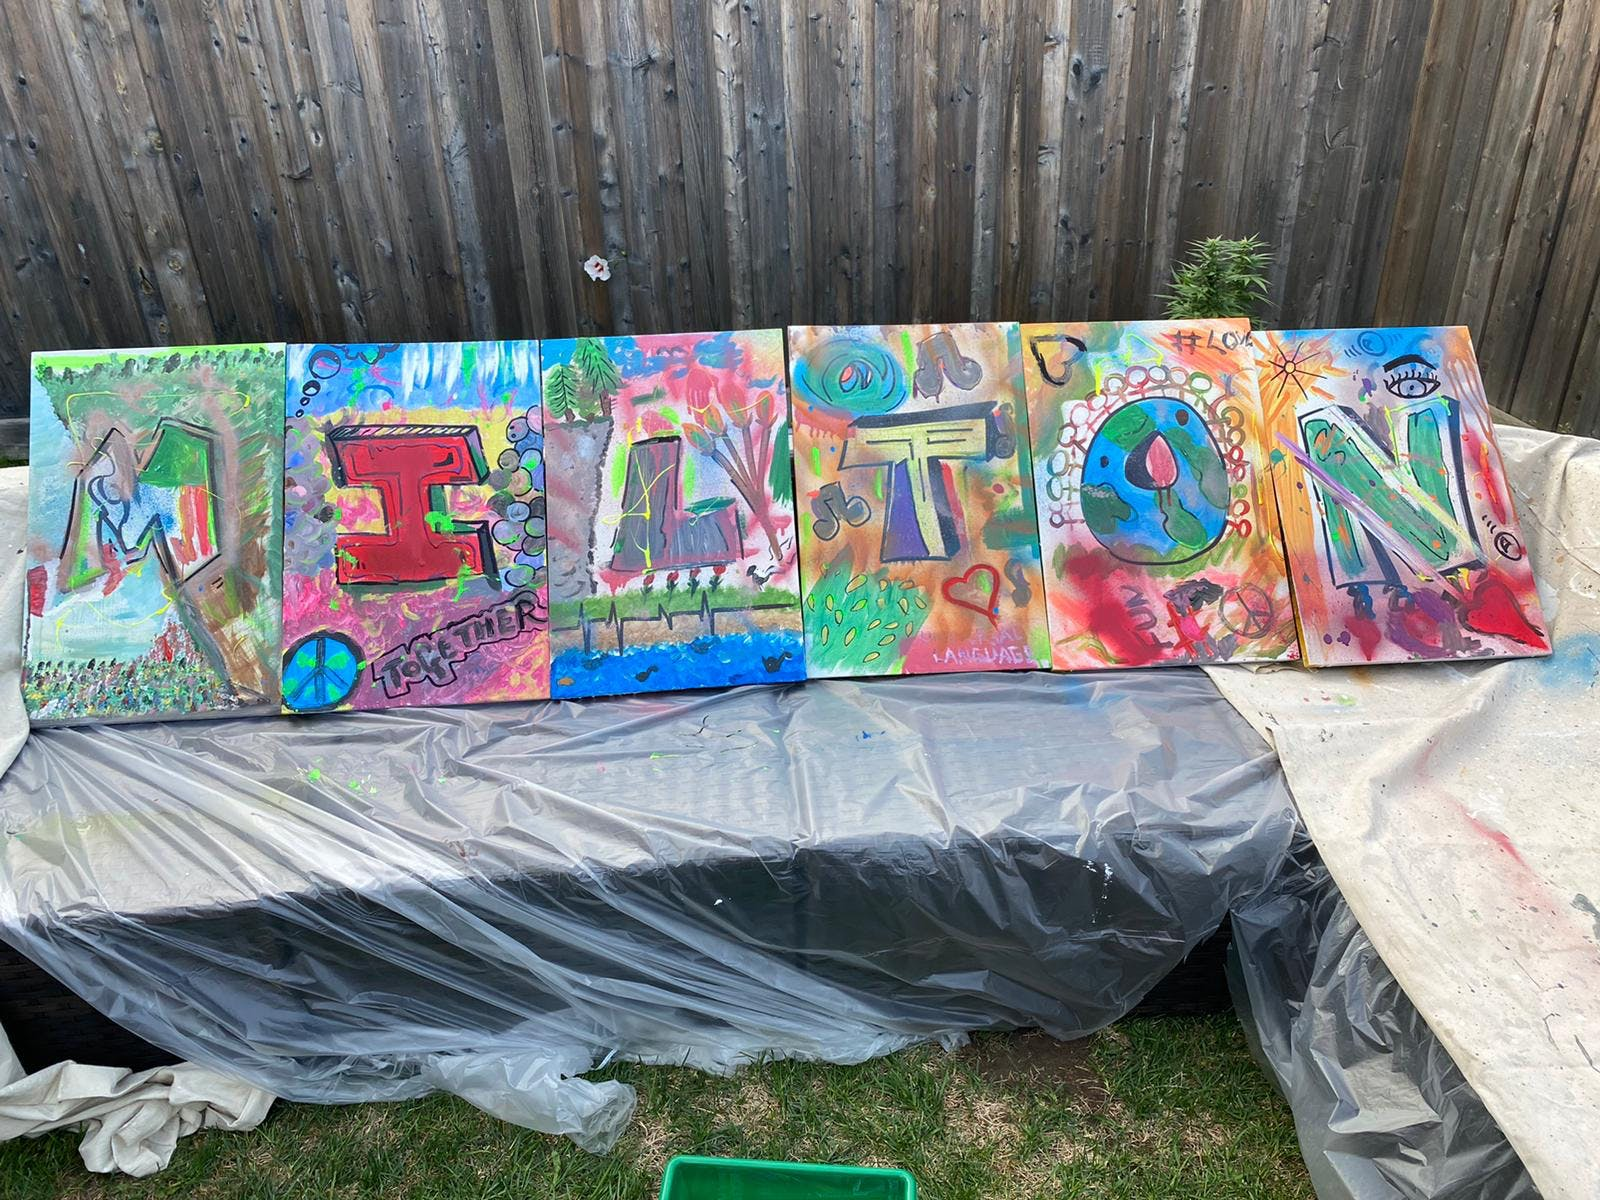 The word Milton painted on canvas.